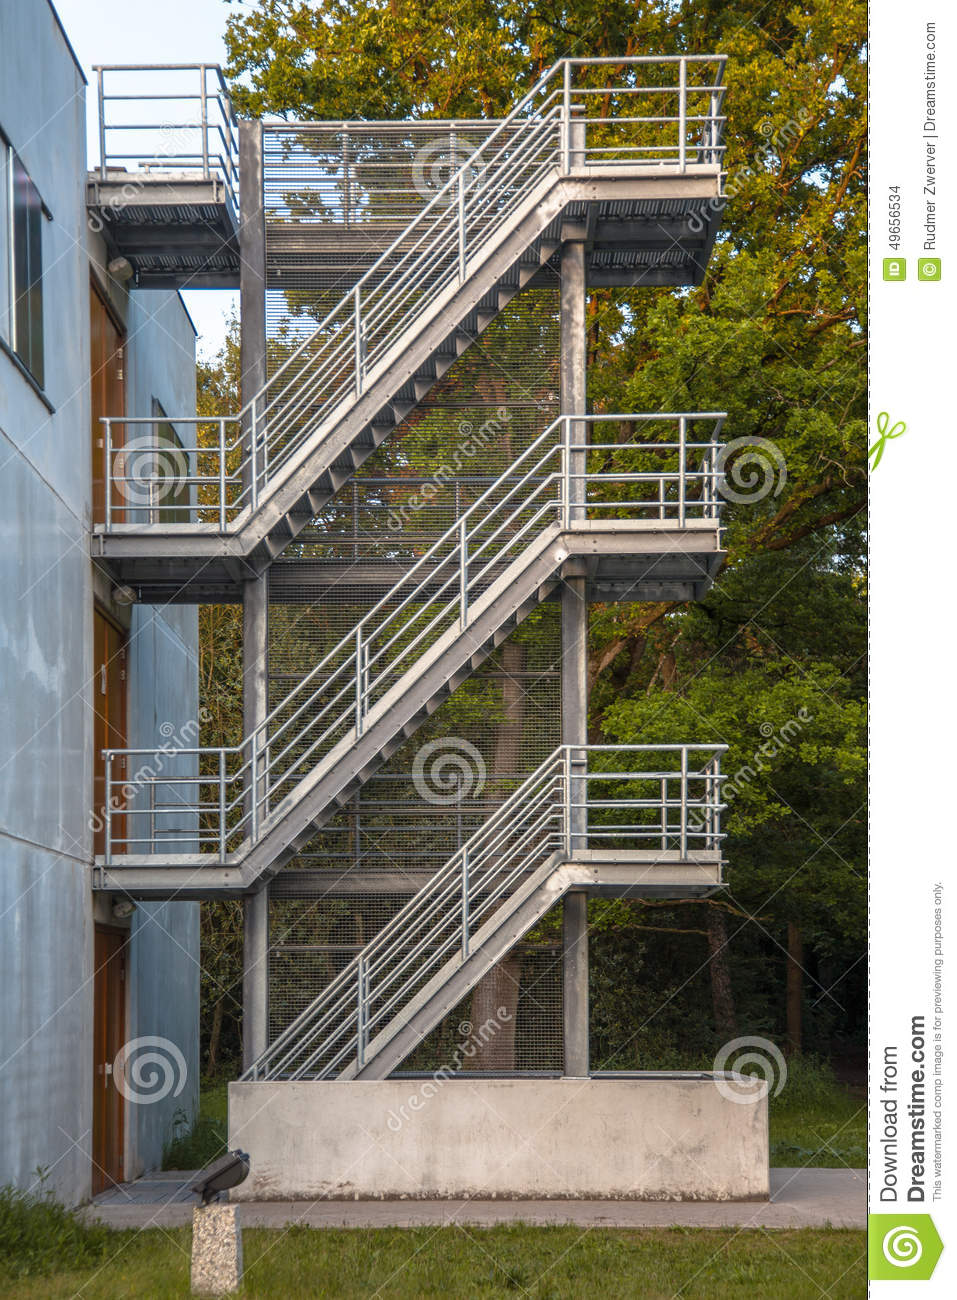 House Exterior Stair Tower : Iron emergency escape stairs stock photo image of